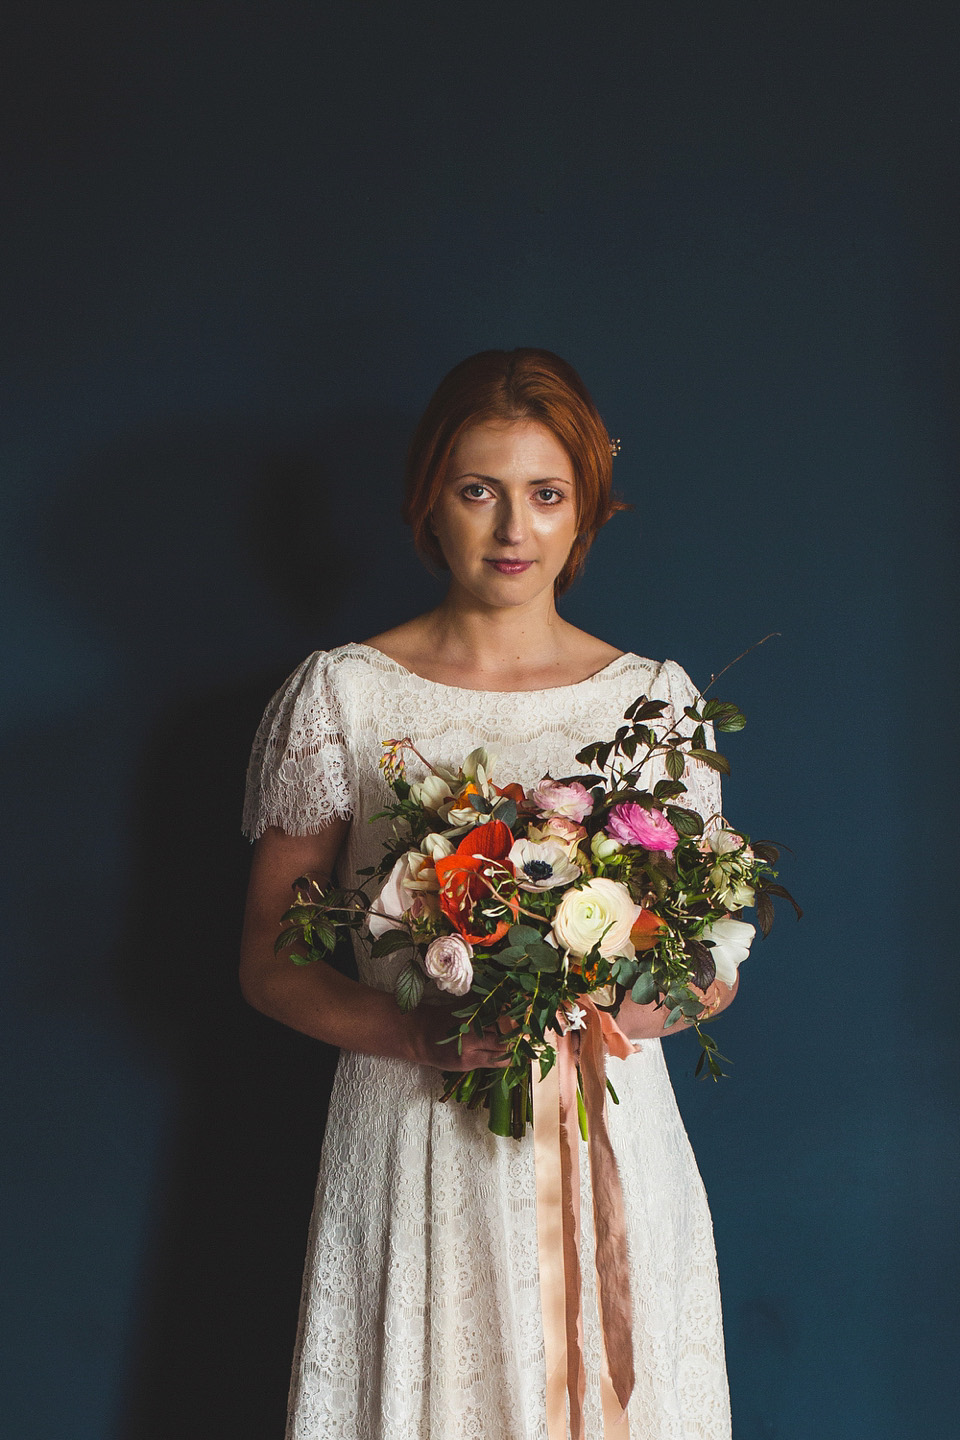 Kate Beaumont – Bespoke, Vintage Inspired Wedding Dresses, Hand Made in Yorkshire